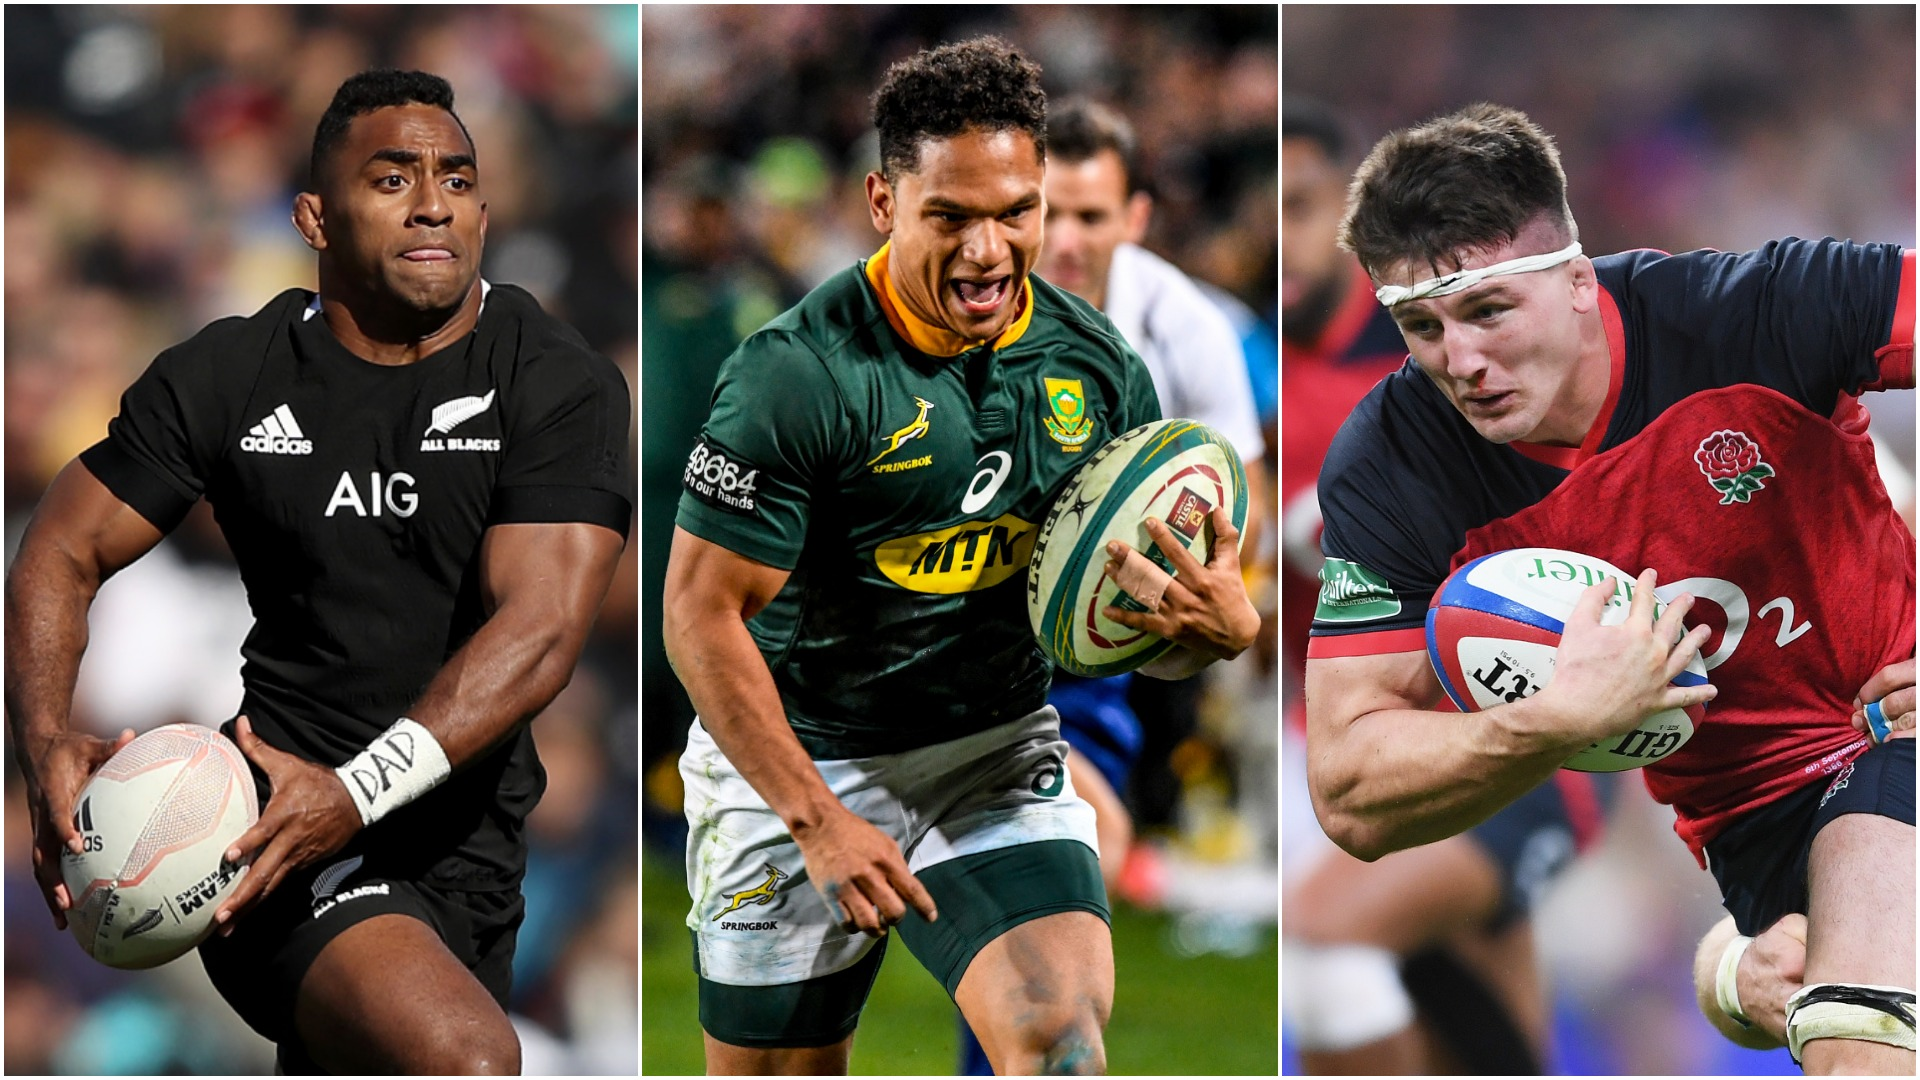 Rugby World Cup 2019: Five breakthrough talents to watch in Japan